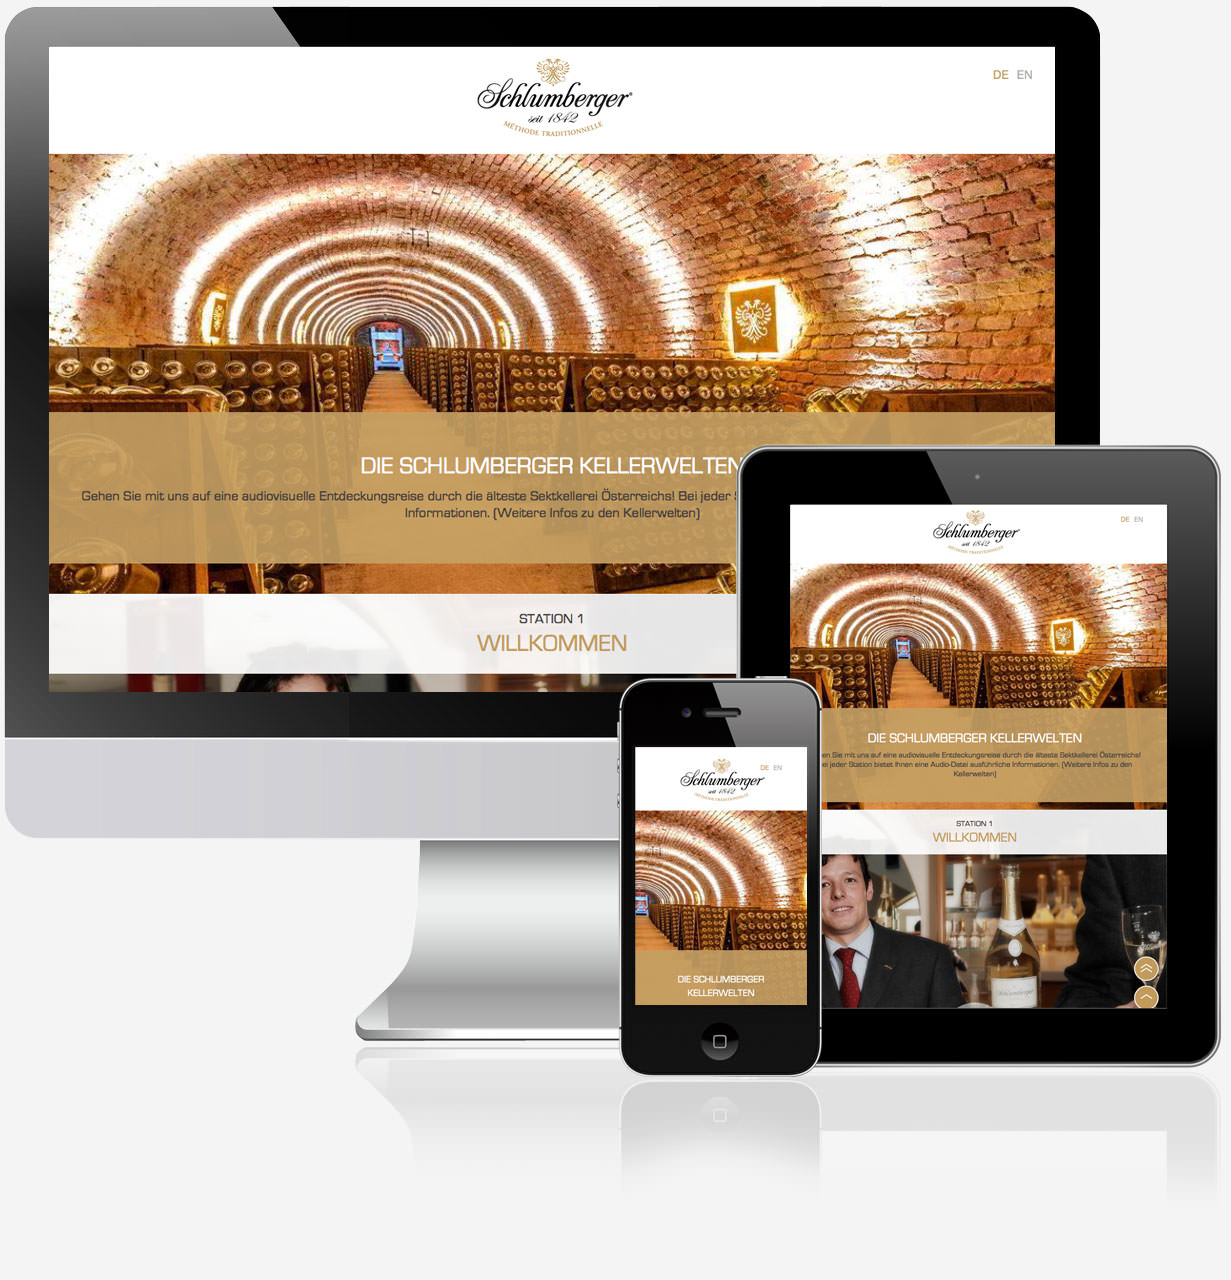 C21 new media design Schlumberger Kellerwelten Website Online Agentur Wien